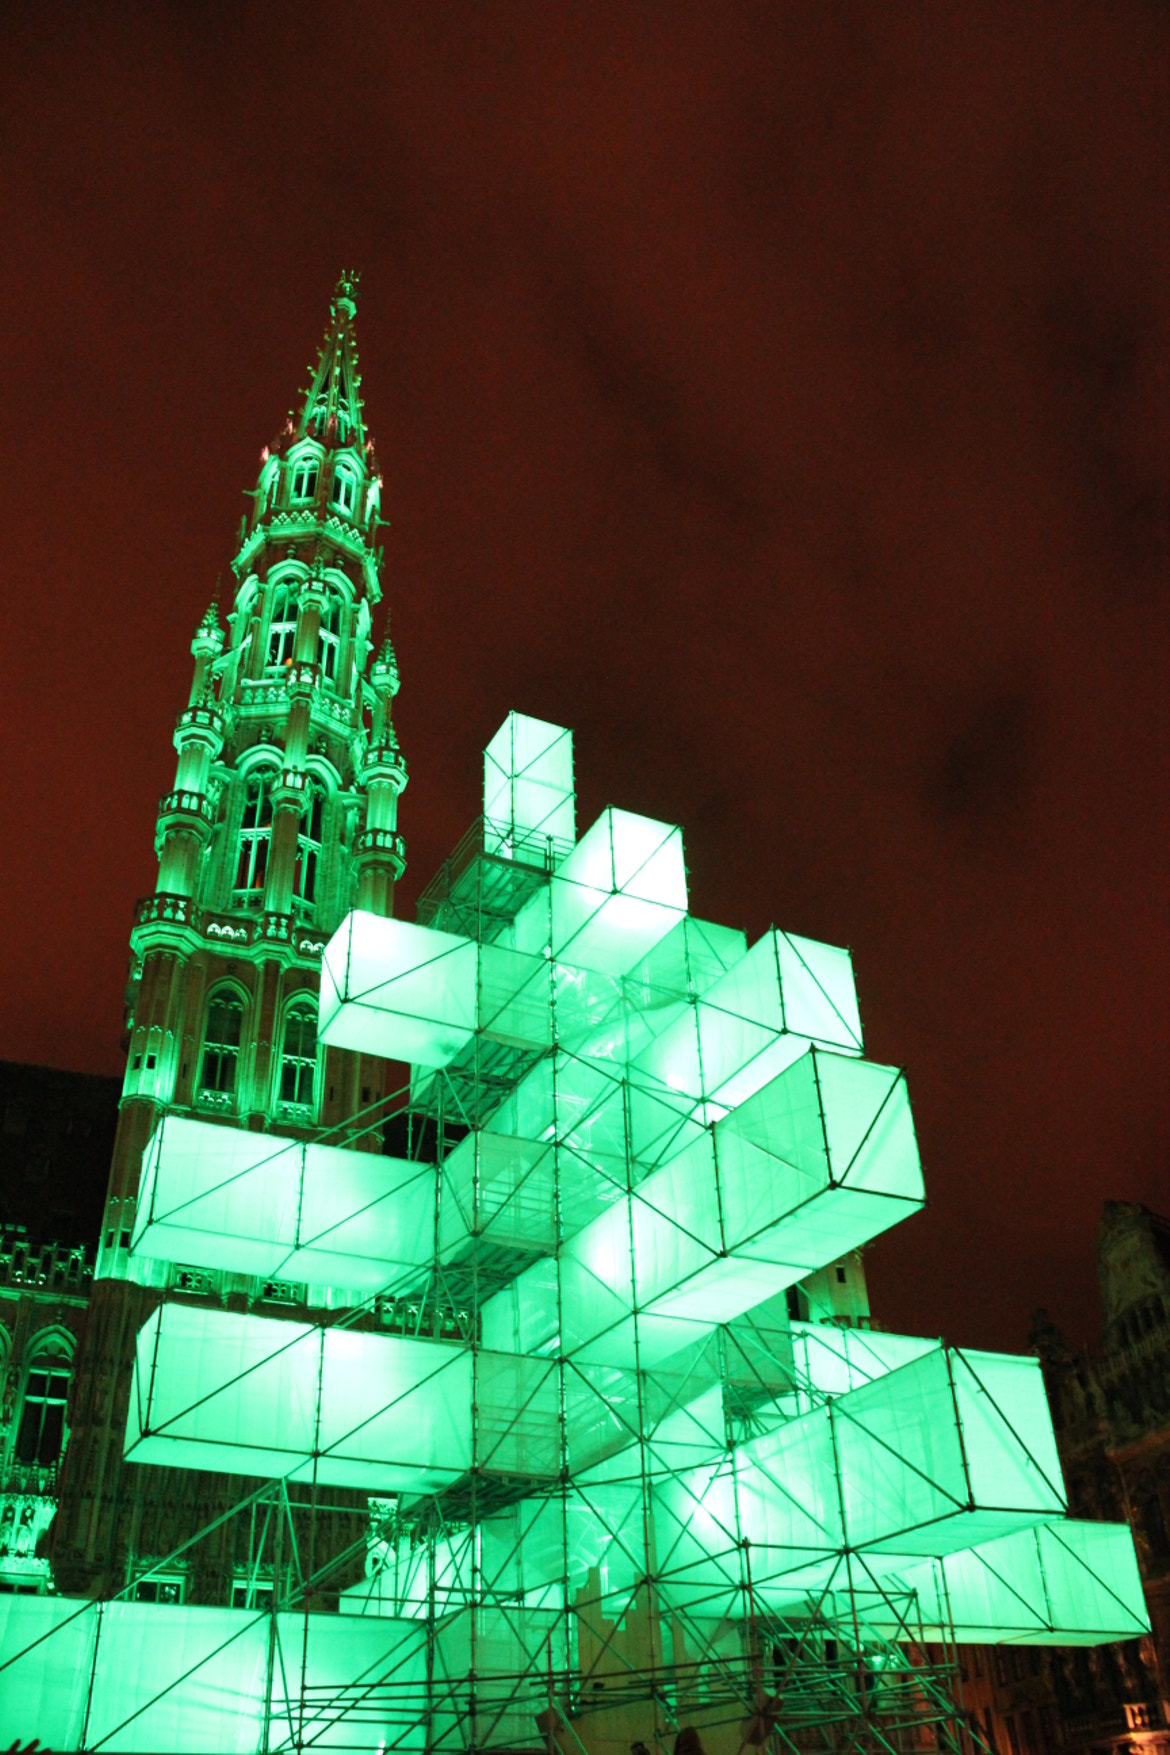 Photograph Belgium's Main Christmas Tree by Katja Sen on 500px